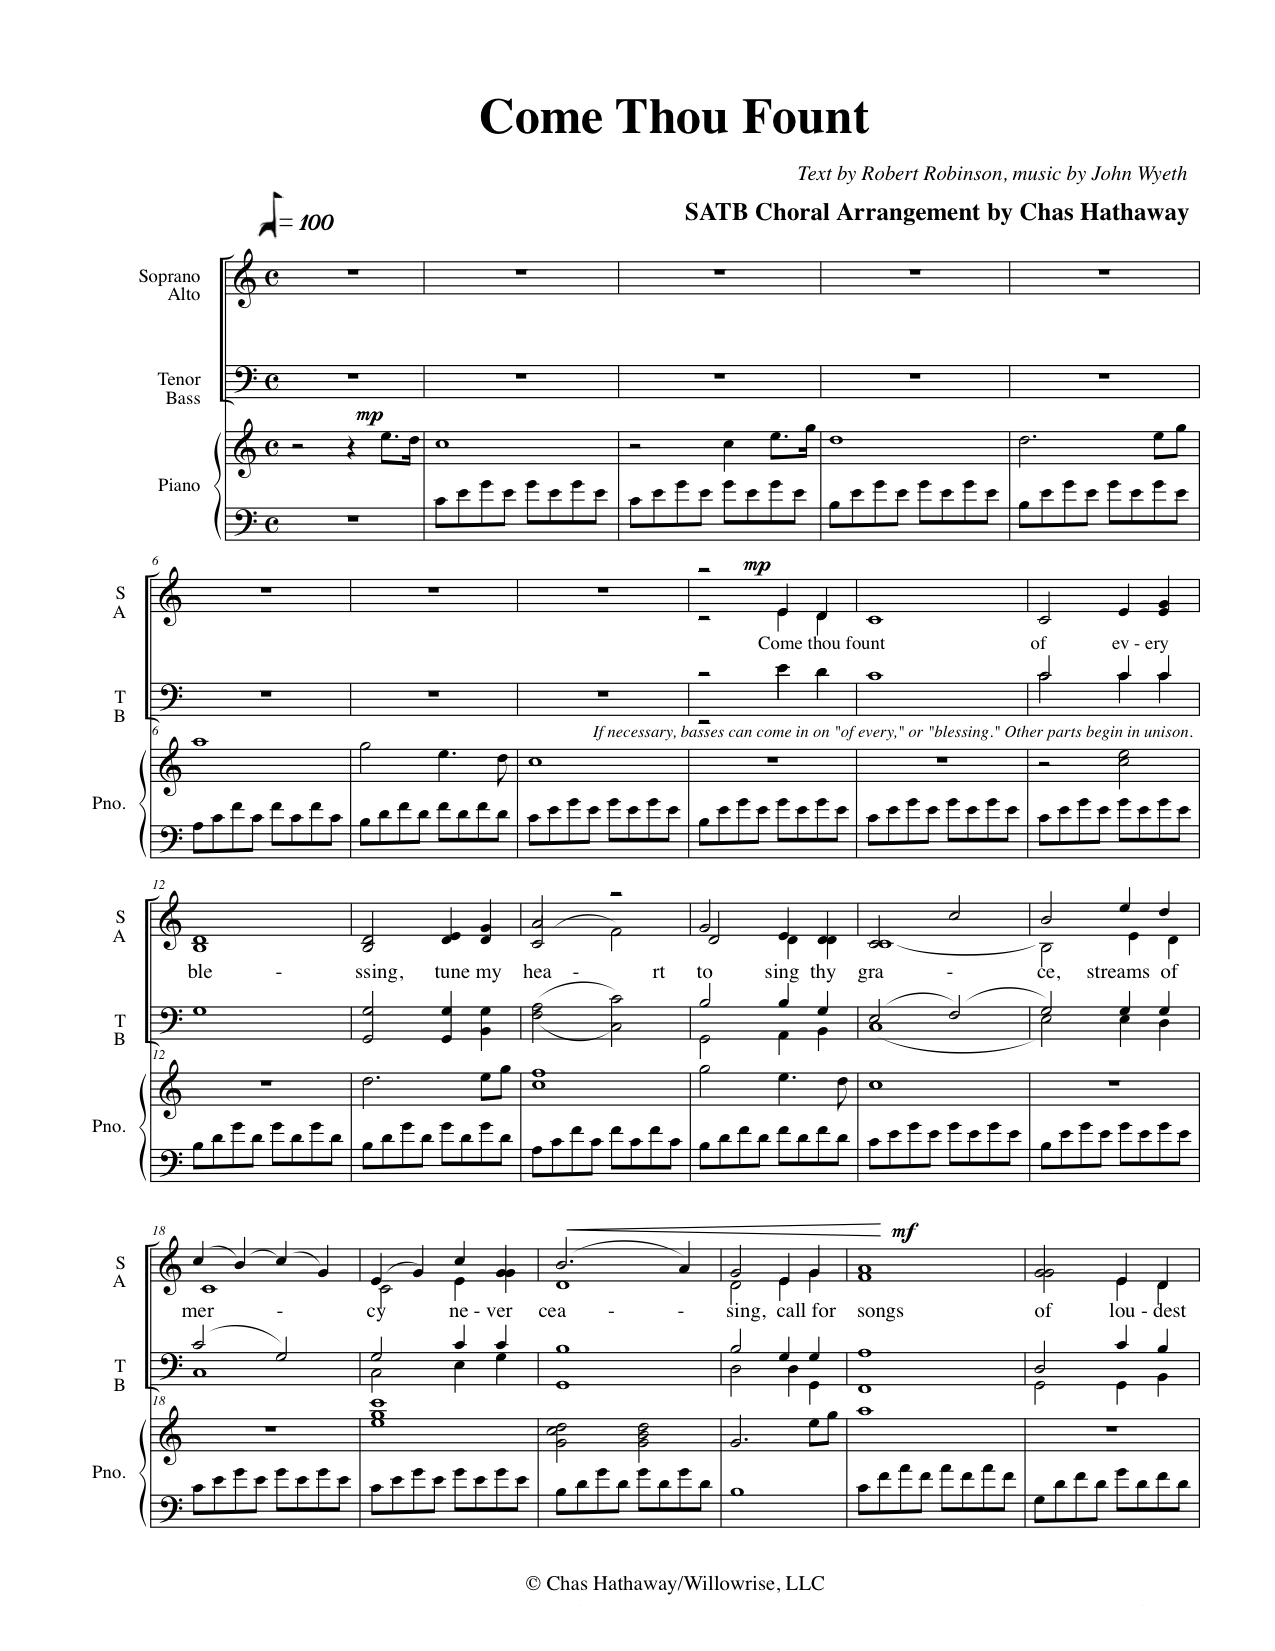 Come Thou Fount Sheet Music by Chas Hathaway